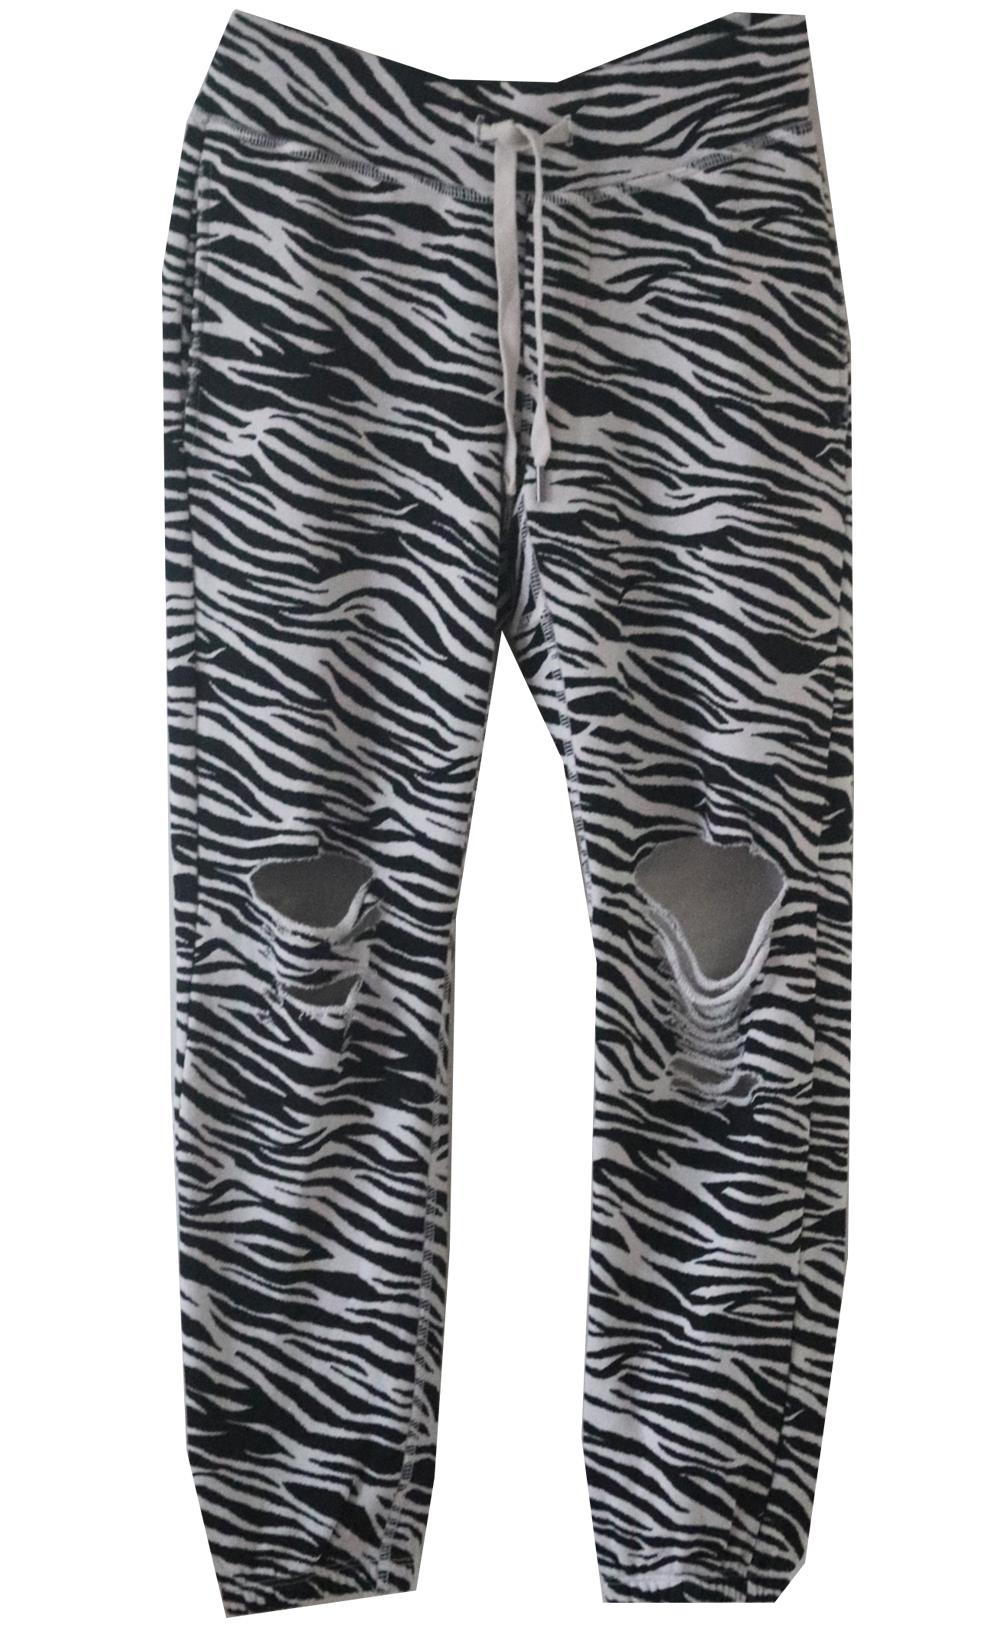 NSF ZEBRA PRINT COTTON TERRY TRACK PANTS SMALL